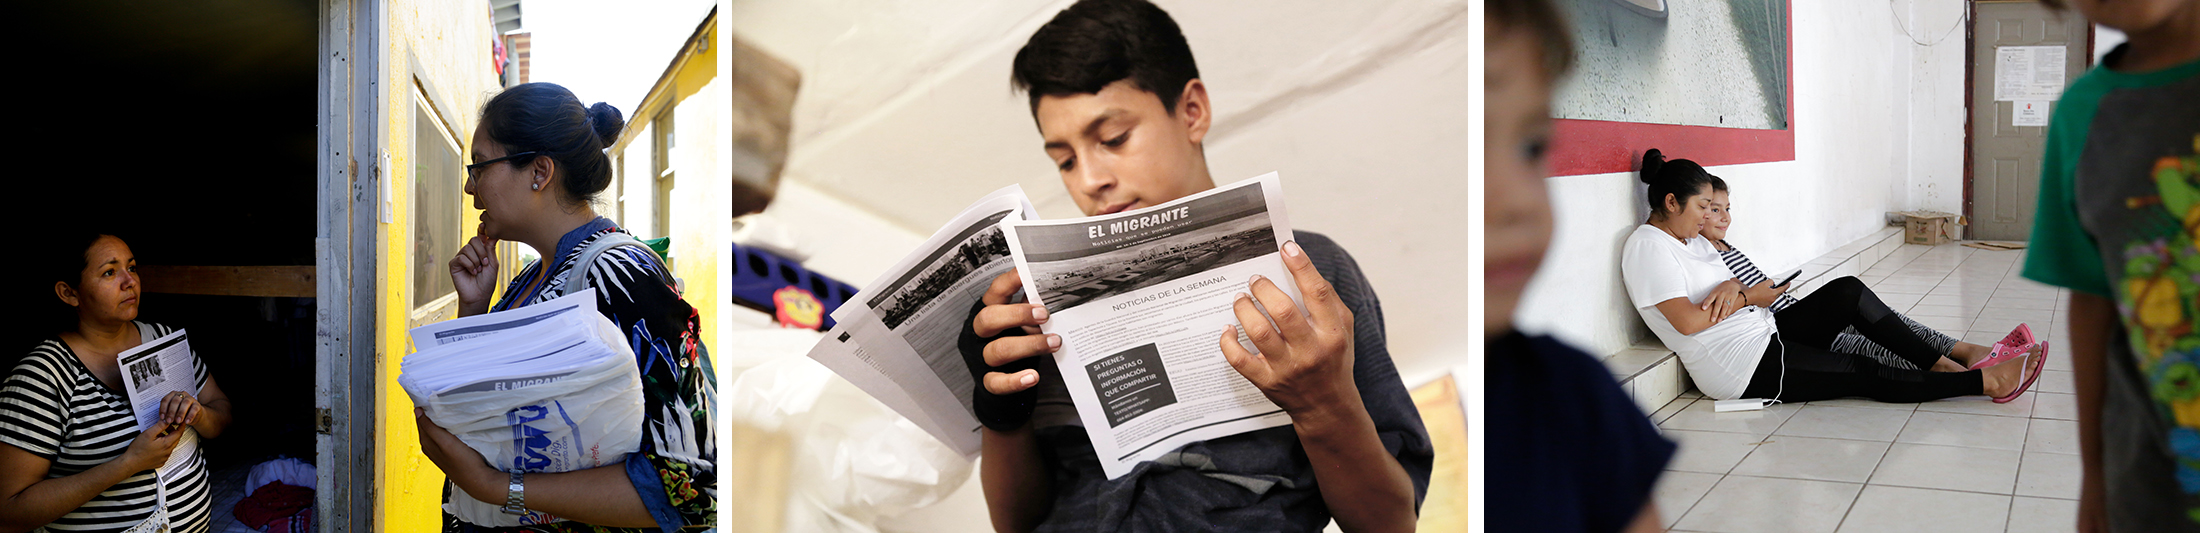 3 photos showing people reading the El Migrante newsletter